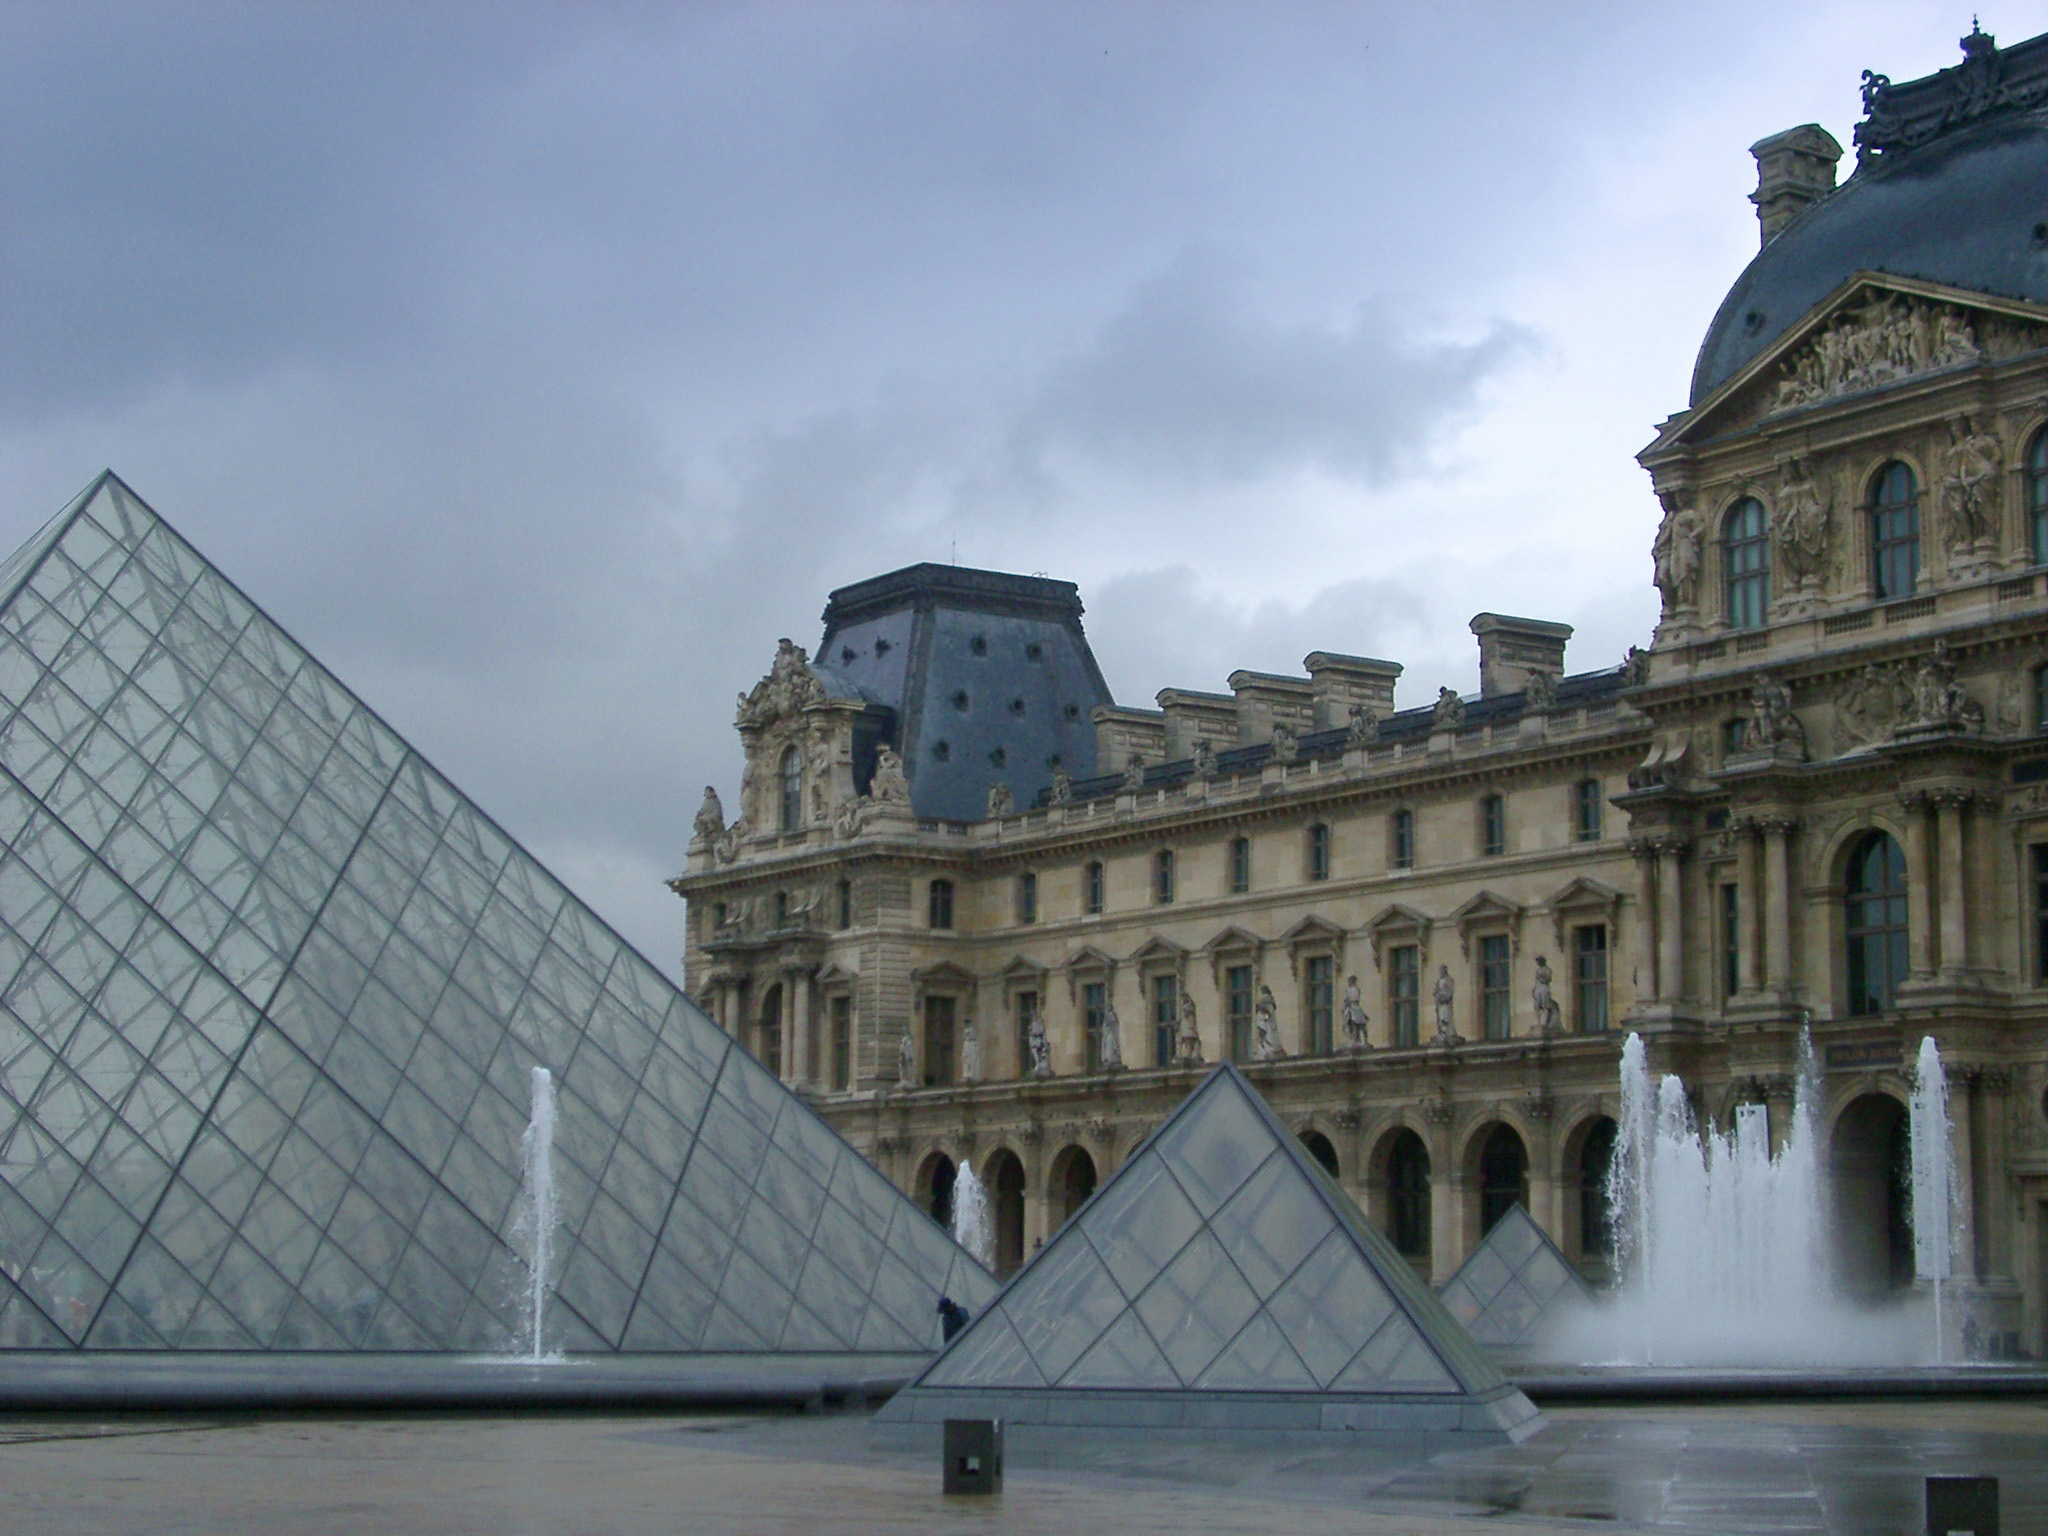 Free stock photo of courtyard of the louvre in paris photoeverywhere - Louvre architekt ...